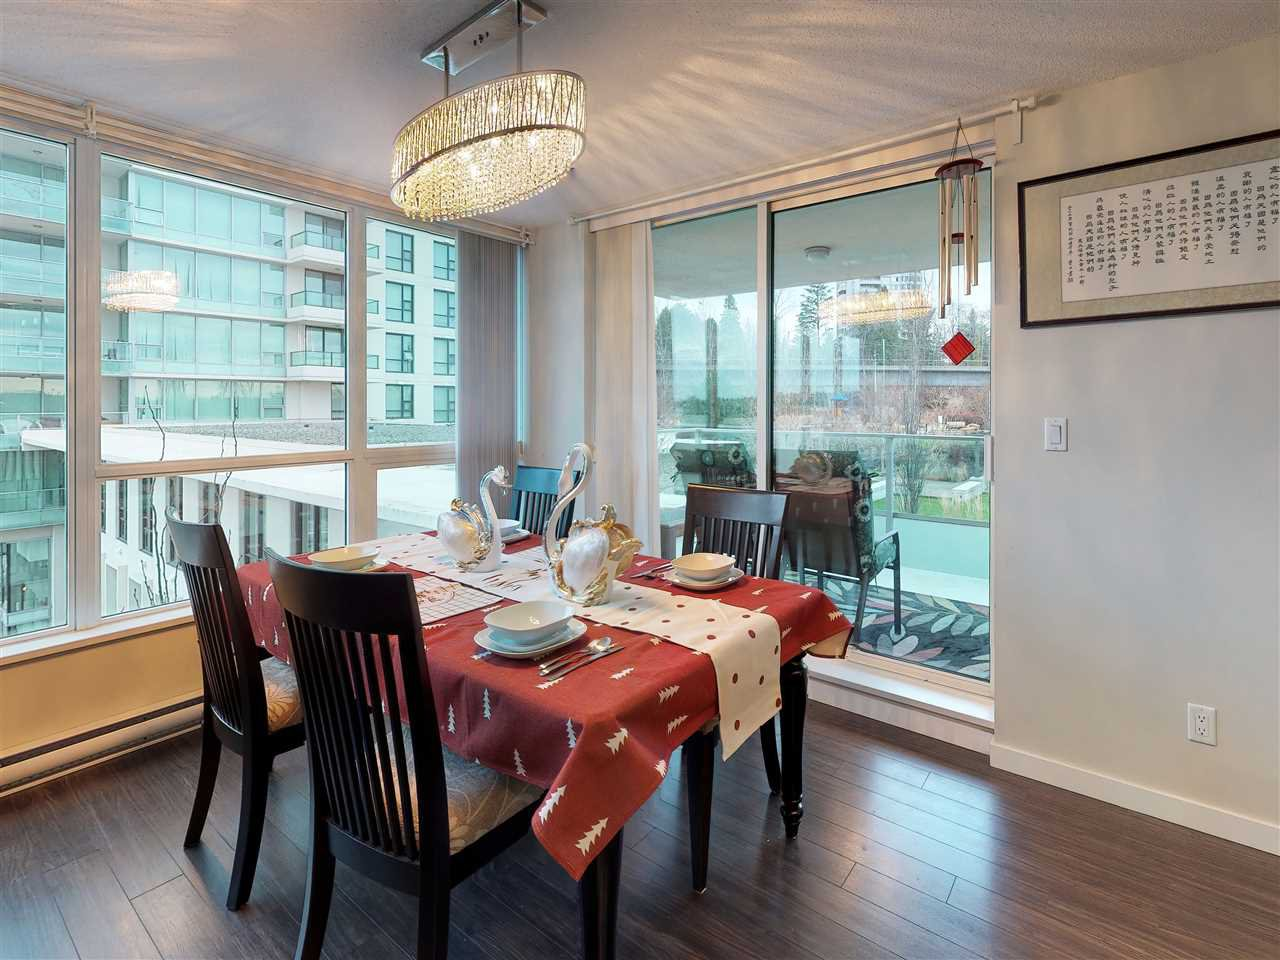 Photo 6: Photos: 405 2232 DOUGLAS ROAD in Burnaby: Brentwood Park Condo for sale (Burnaby North)  : MLS®# R2347040